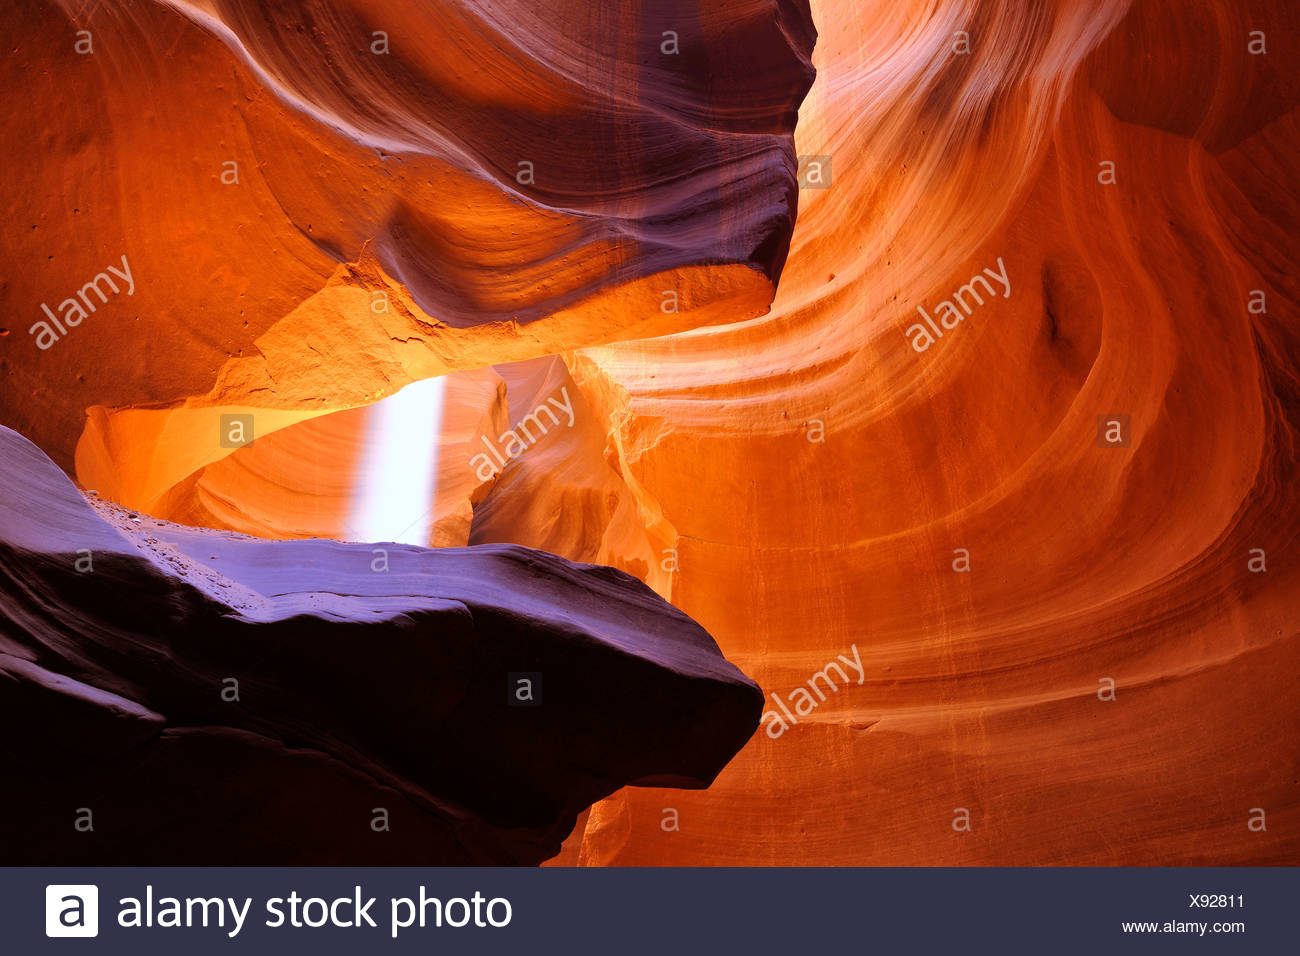 Beam of light, red sandstone of the Moenkopi formation, rock formations, colours and textures in the Upper Antelope Slot Canyon - Stock Image